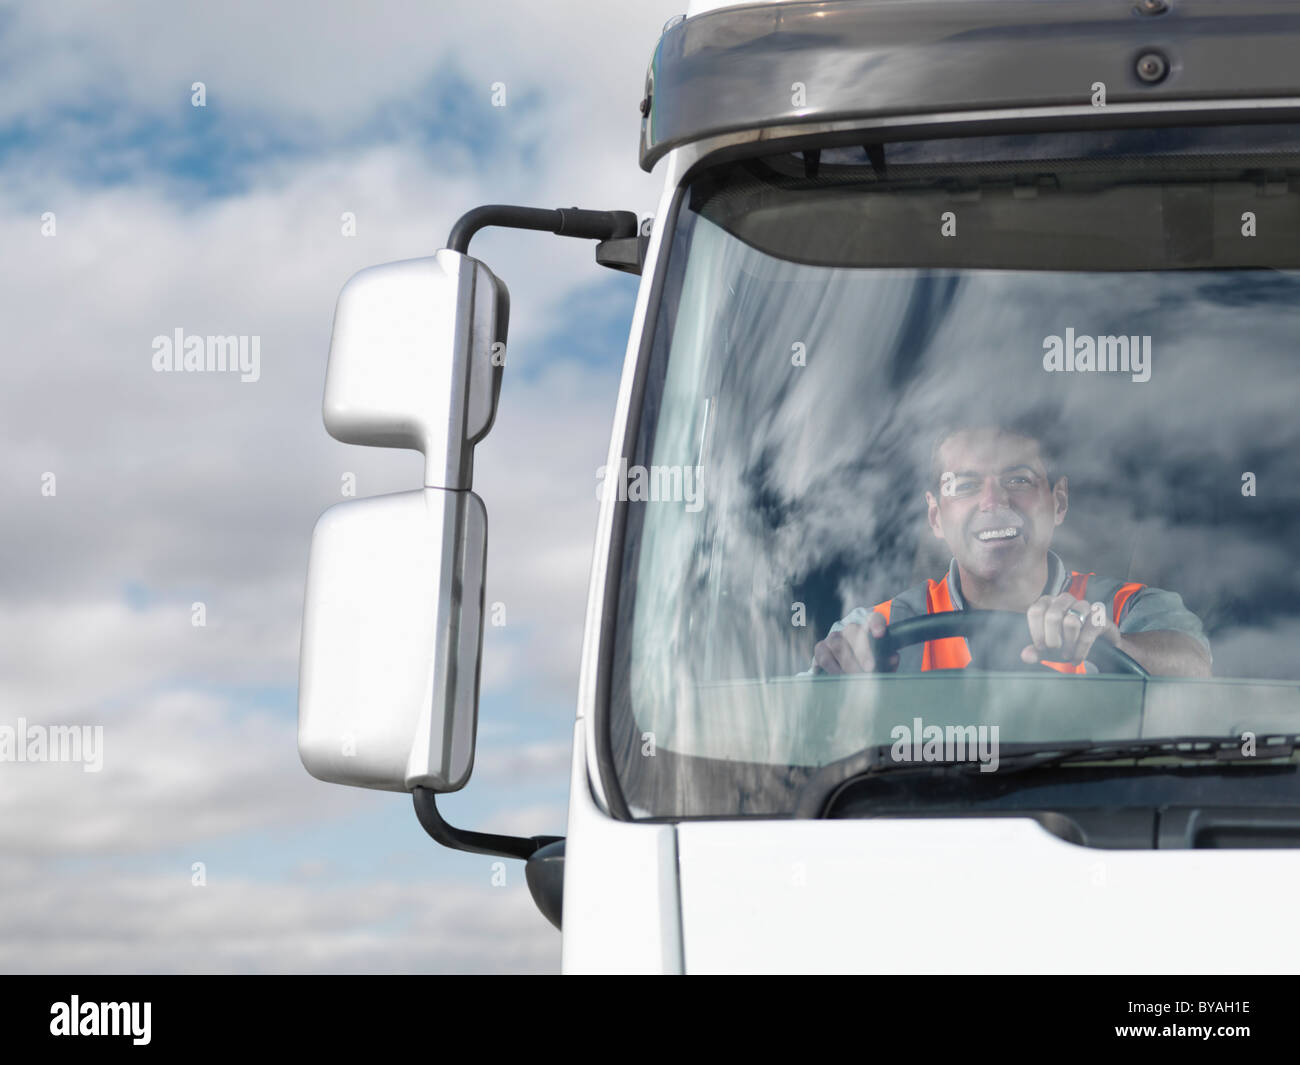 Driver in truck cab - Stock Image